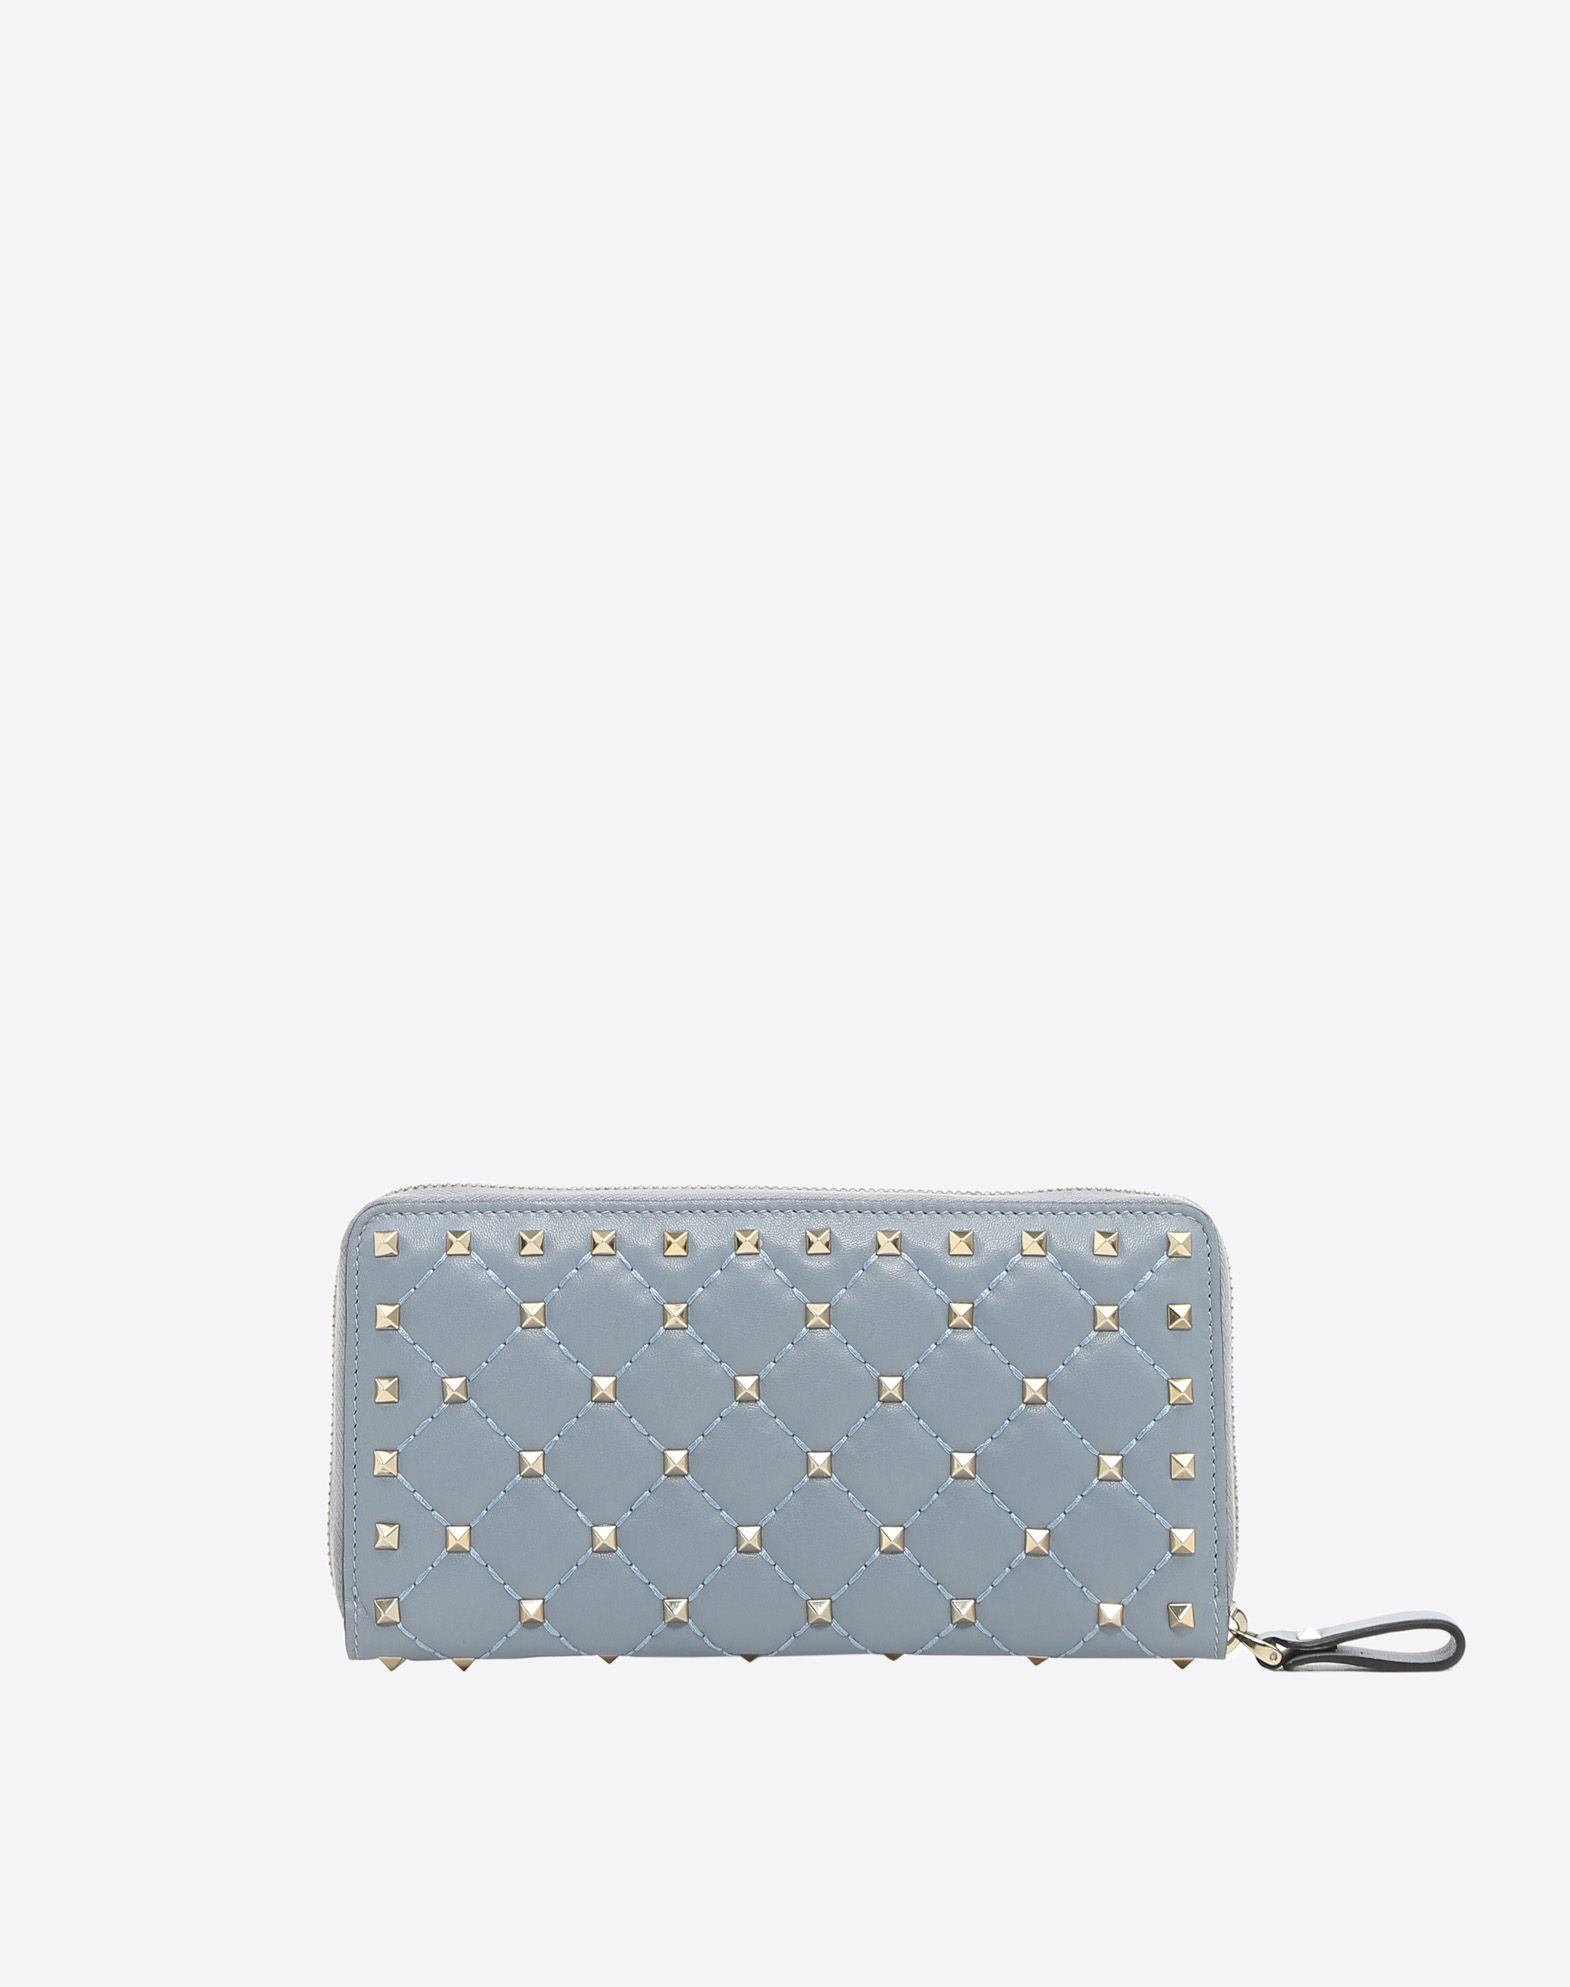 Valentino Valentino Garavani Rockstud spike wallet Sale How Much Amazon Sale Online Azr7Yvvx0